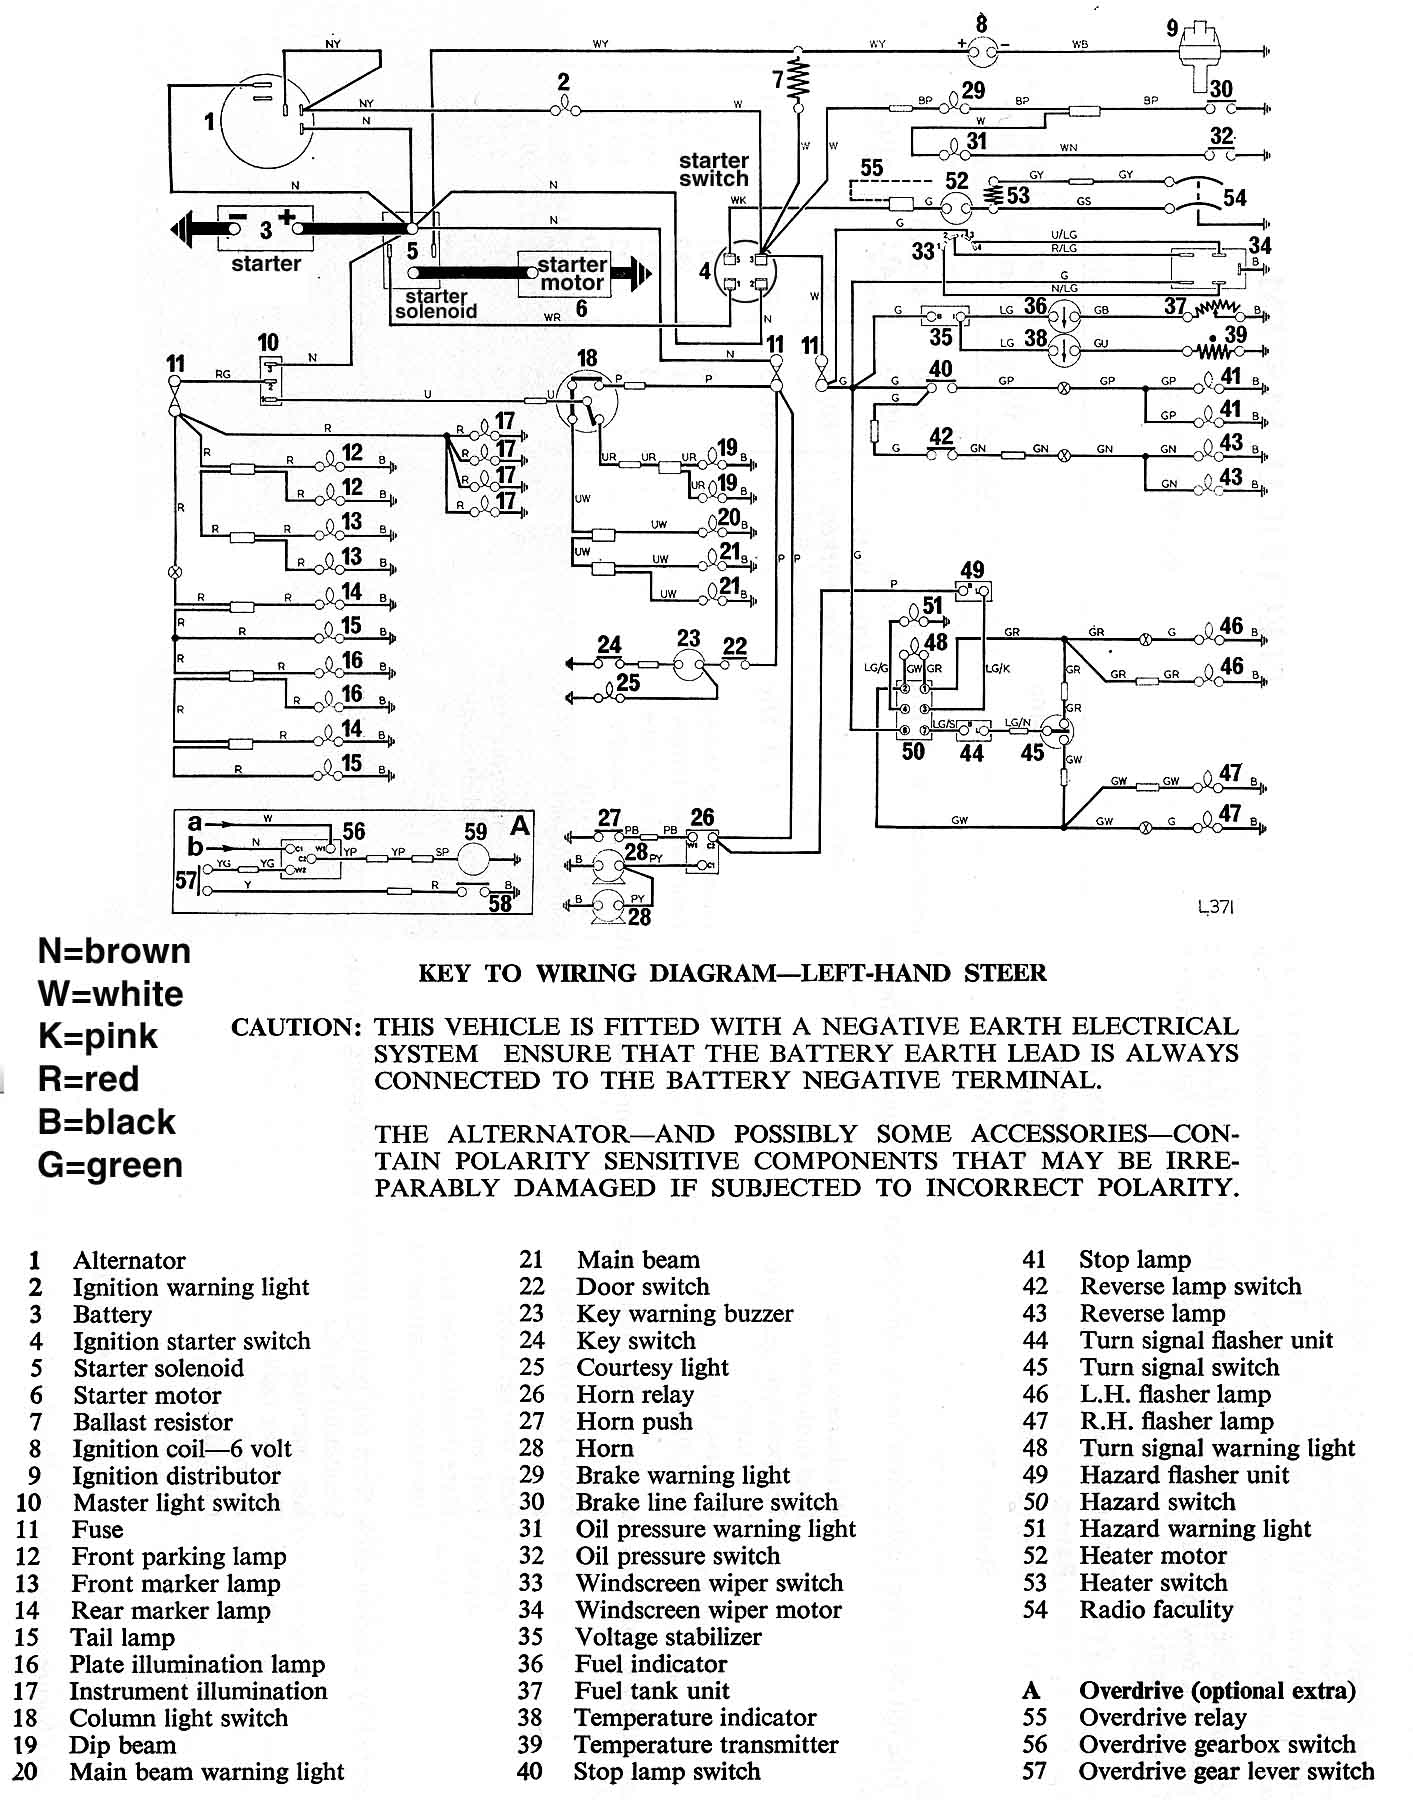 MKIVwire wiring schematics and diagrams triumph spitfire, gt6, herald 73 triumph spitfire 1500 wiring harness at edmiracle.co